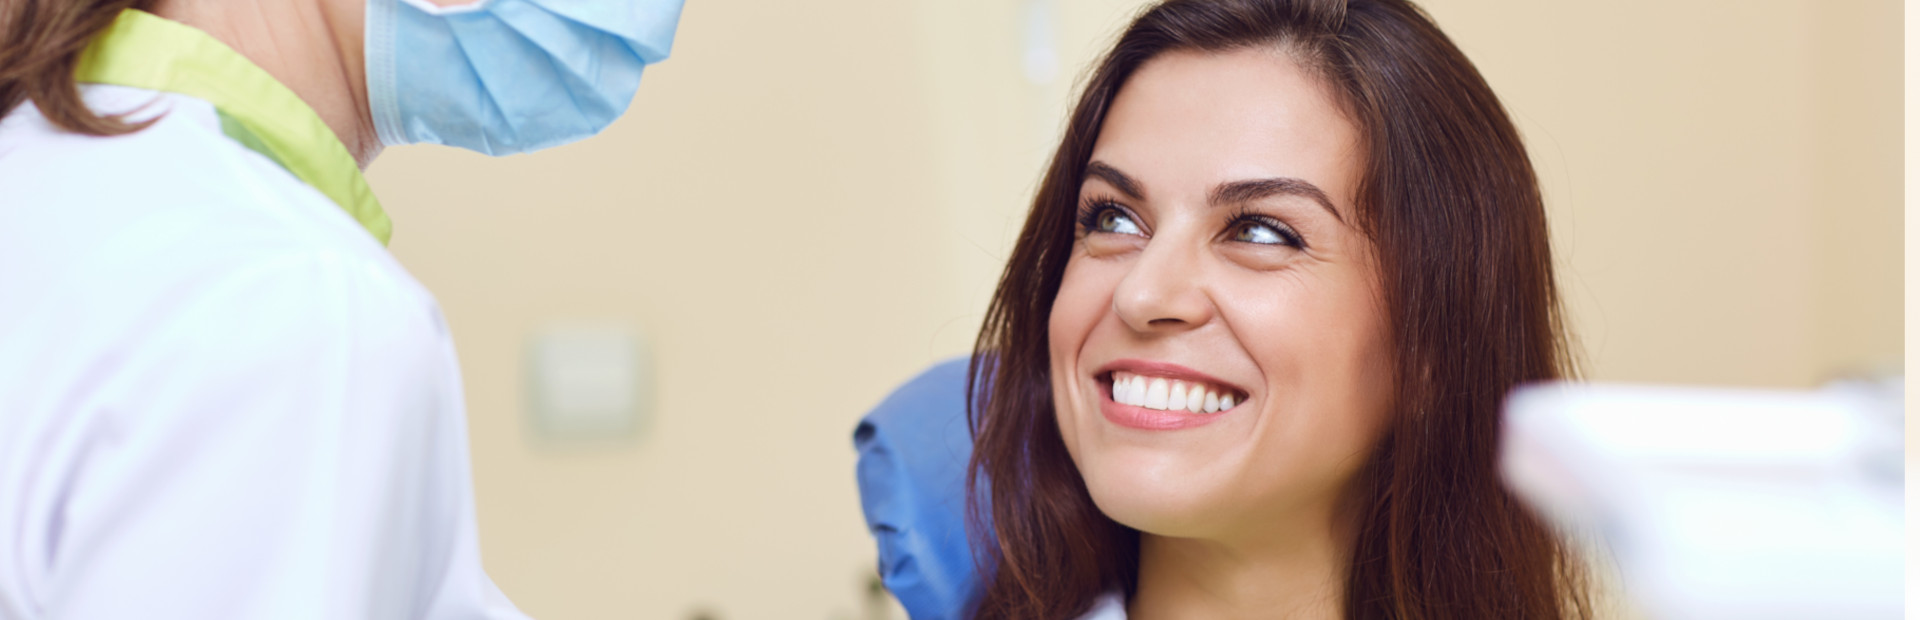 Patient smiling at the dental clinic